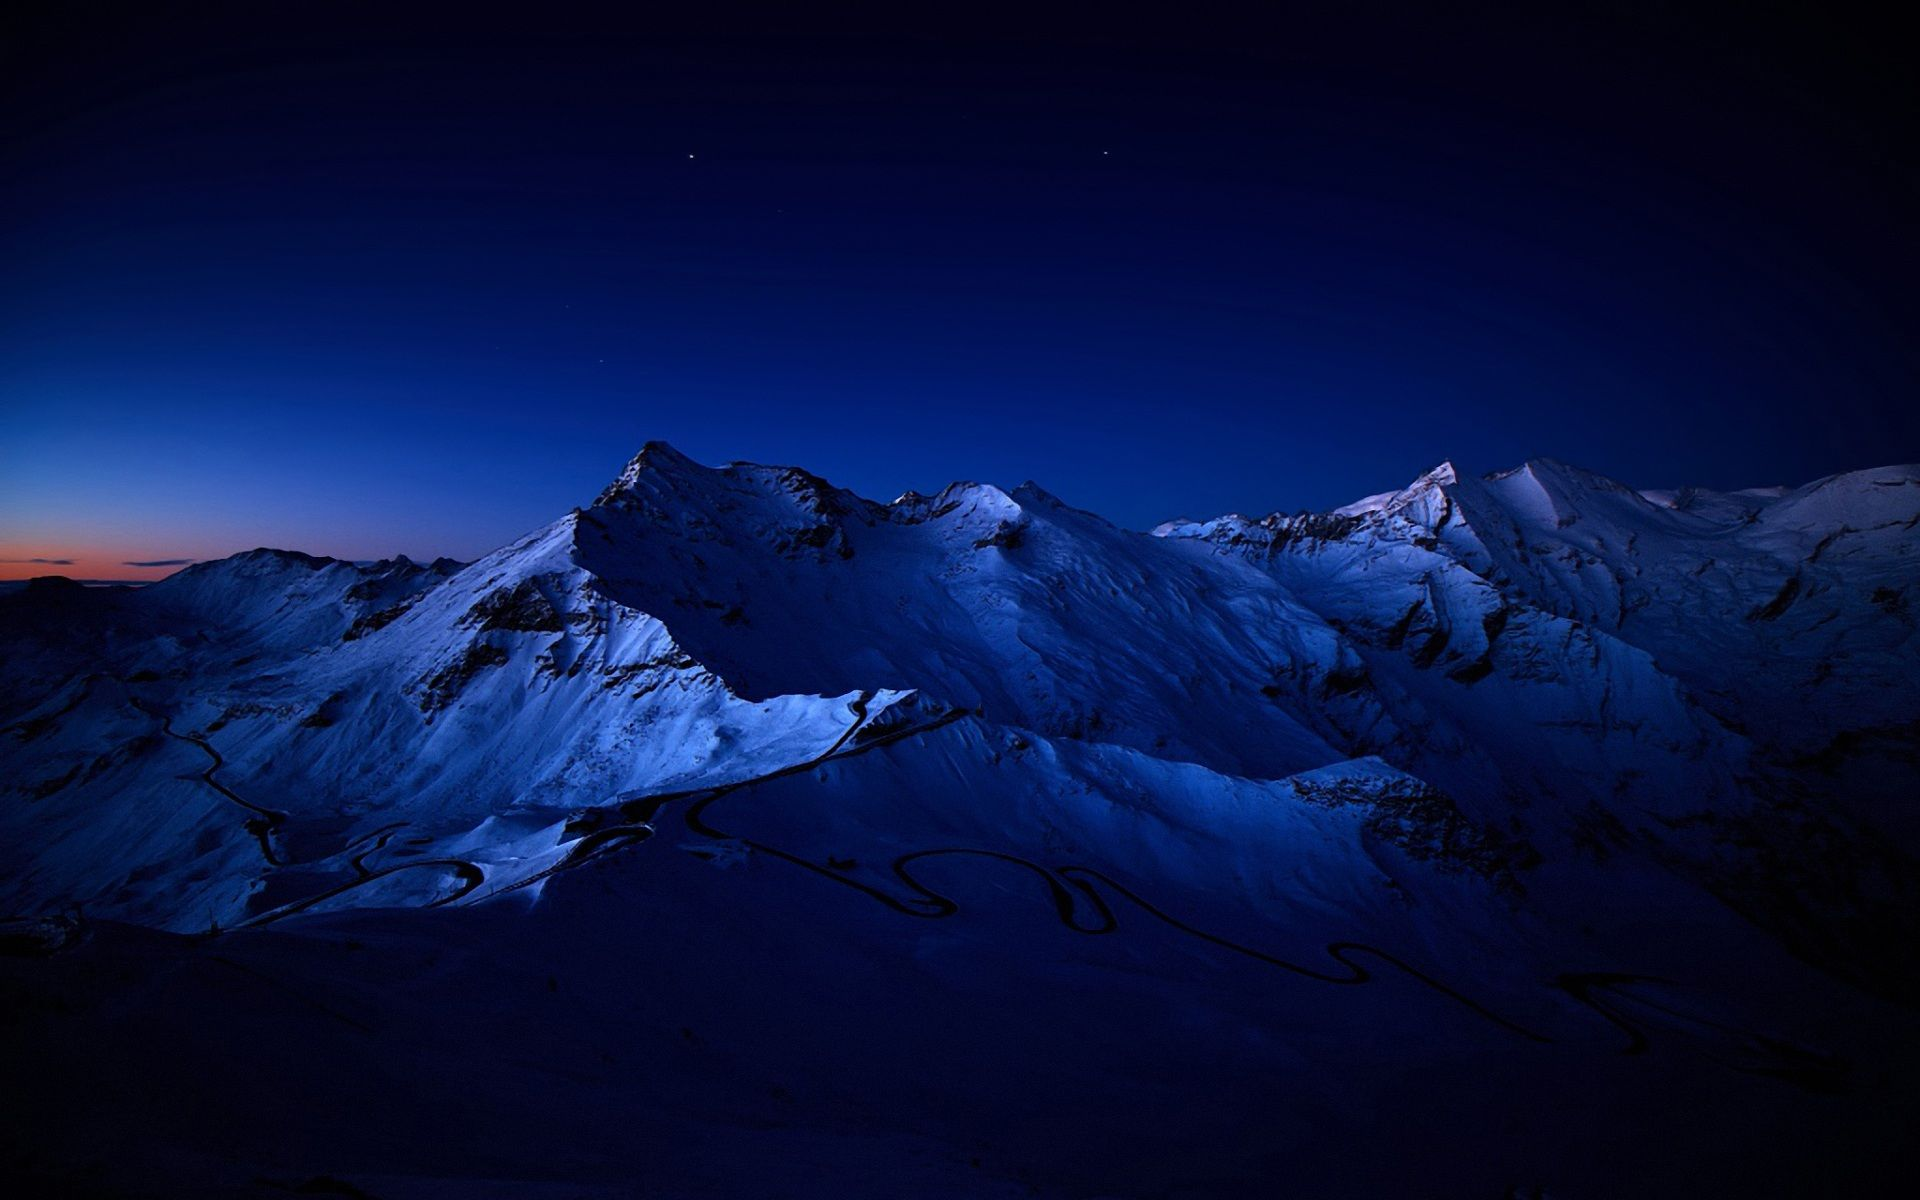 Night Mountain Wallpaper Hd Wallpapers Backgrounds Images Art Photos Mountains At Night Mountain Pictures Mountain Wallpaper